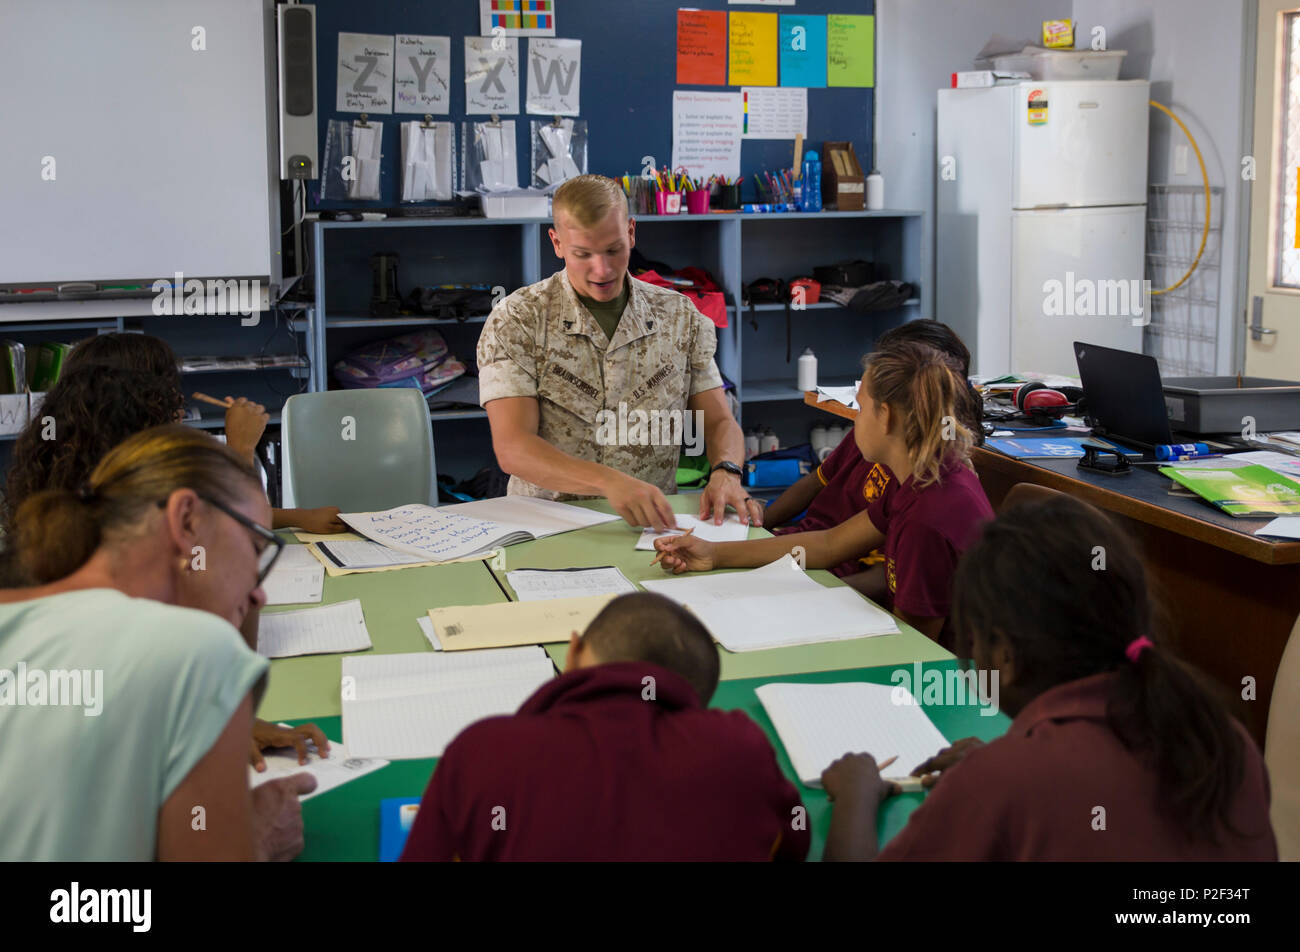 U.S. Marine Corps Cpl. Cody Braunscheidel, an aviation logistics information management systems specialist assigned to Marine Fighter Attack Squadron (VMFA) 122, explains multiplication to students at MacFarlane Primary School in Katherine, Northern Territory, Australia, Sept. 1, 2016. Marines are invited to mentor and teach students every iteration of Southern Frontier, a three week unit level training conducted by U.S. Marines at Royal Australian Air Force Base Tindal. The primary school's student population is 92 percent indigenous and is very transient. Classes are designed to provide stud - Stock Image